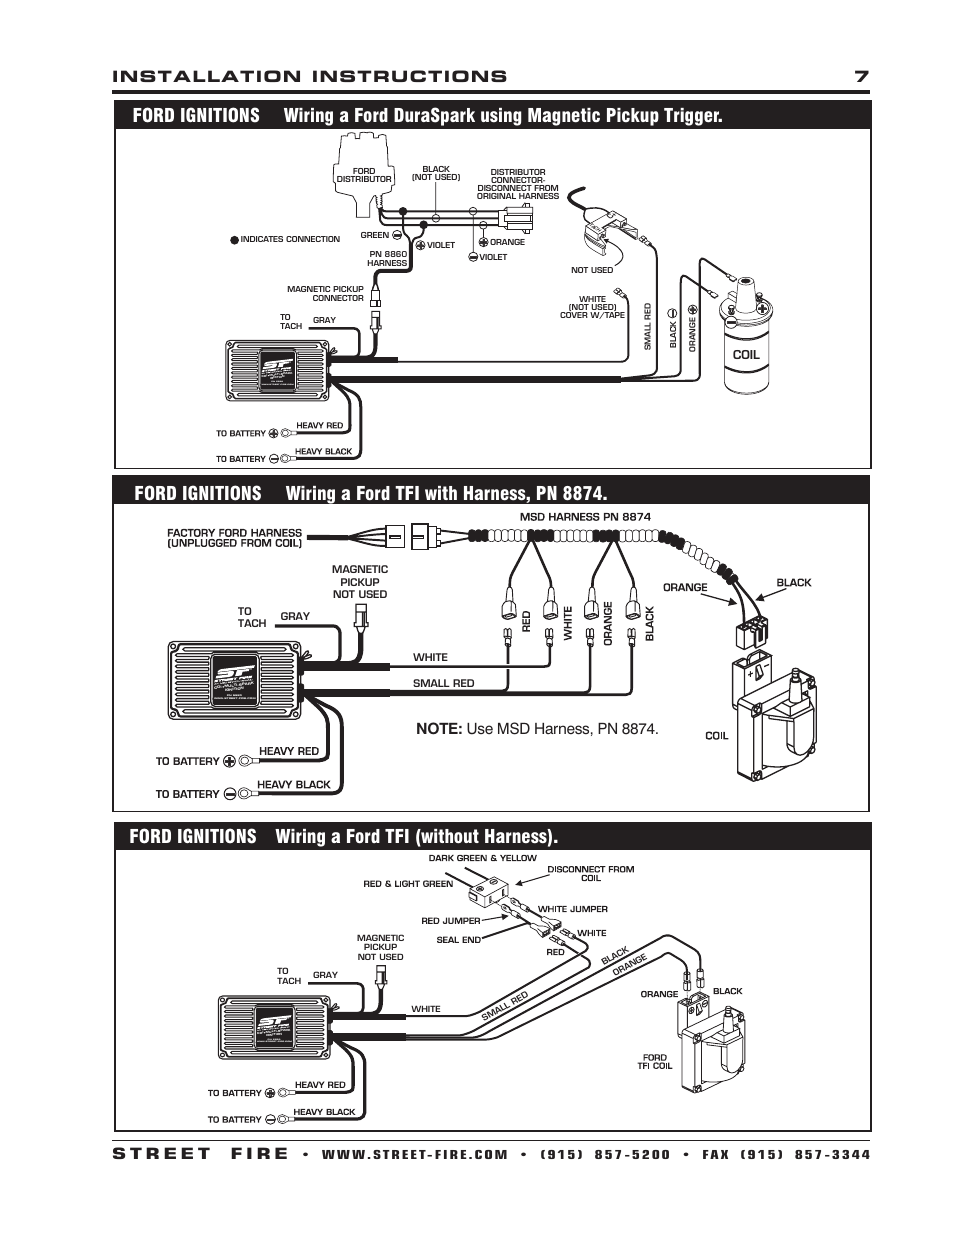 Enchanting Msd Ignition Wiring Diagram Ford Pictures - Best Image ...